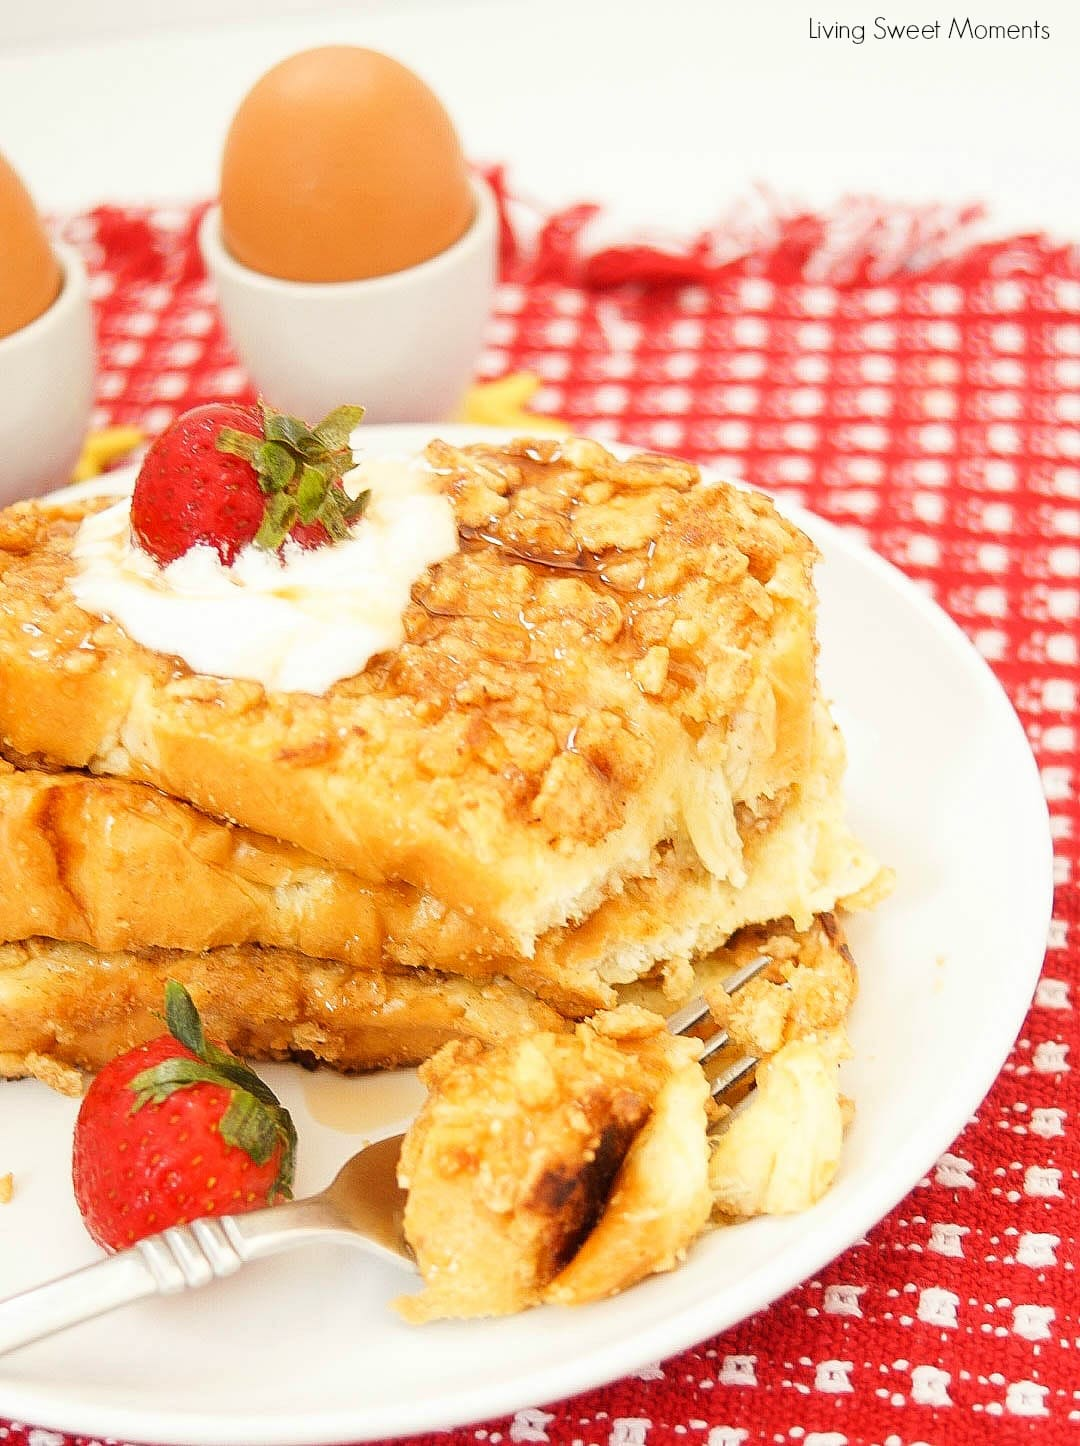 This Crunchy French Toast recipe is crusted with cinnamon cereal and sauteed with butter. The perfect quick breakfast or brunch idea for kids and adults.